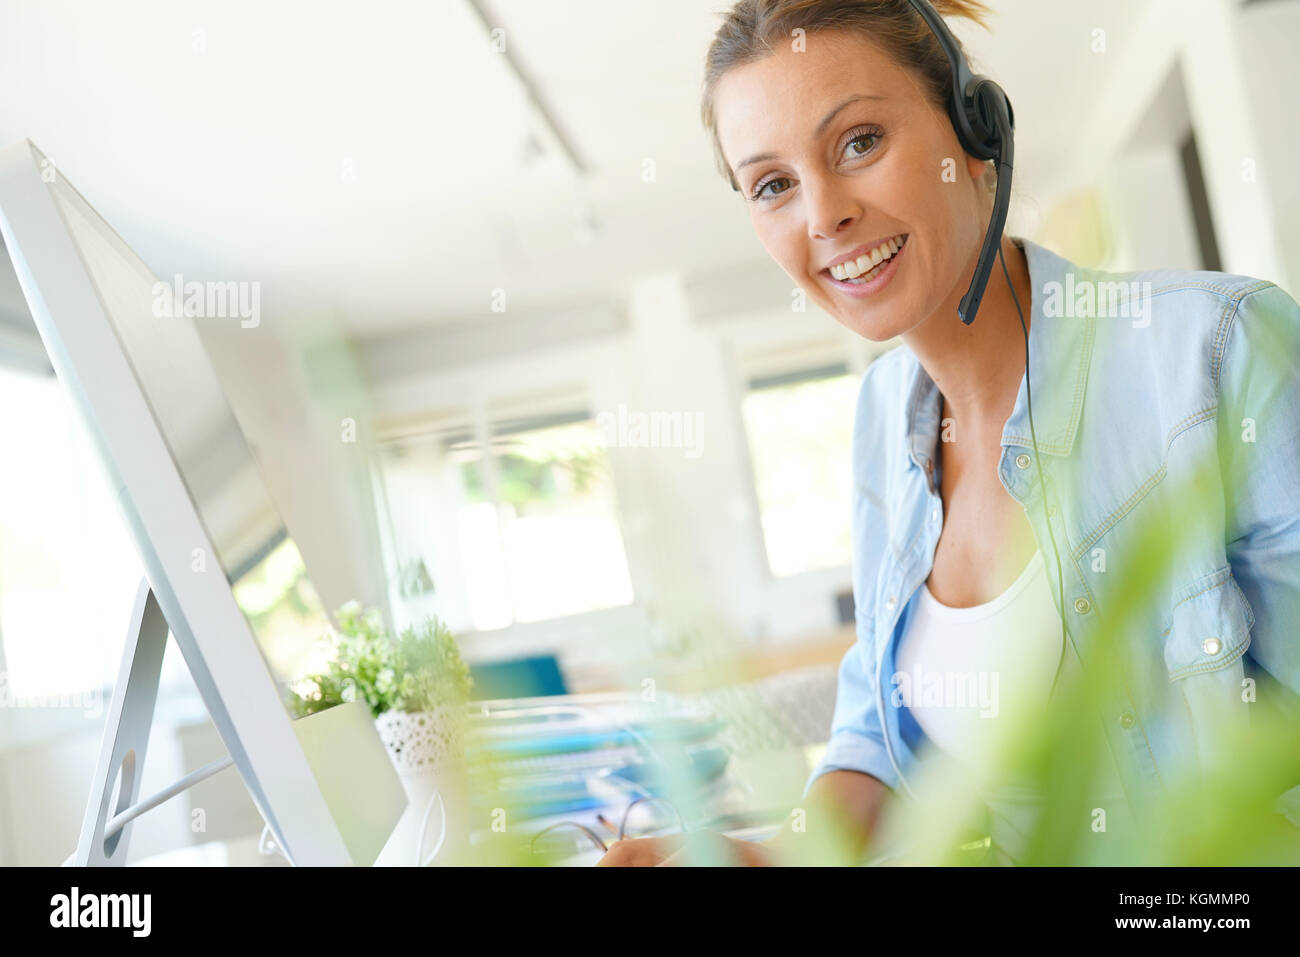 Customer service operator talking on phone in office Stock Photo